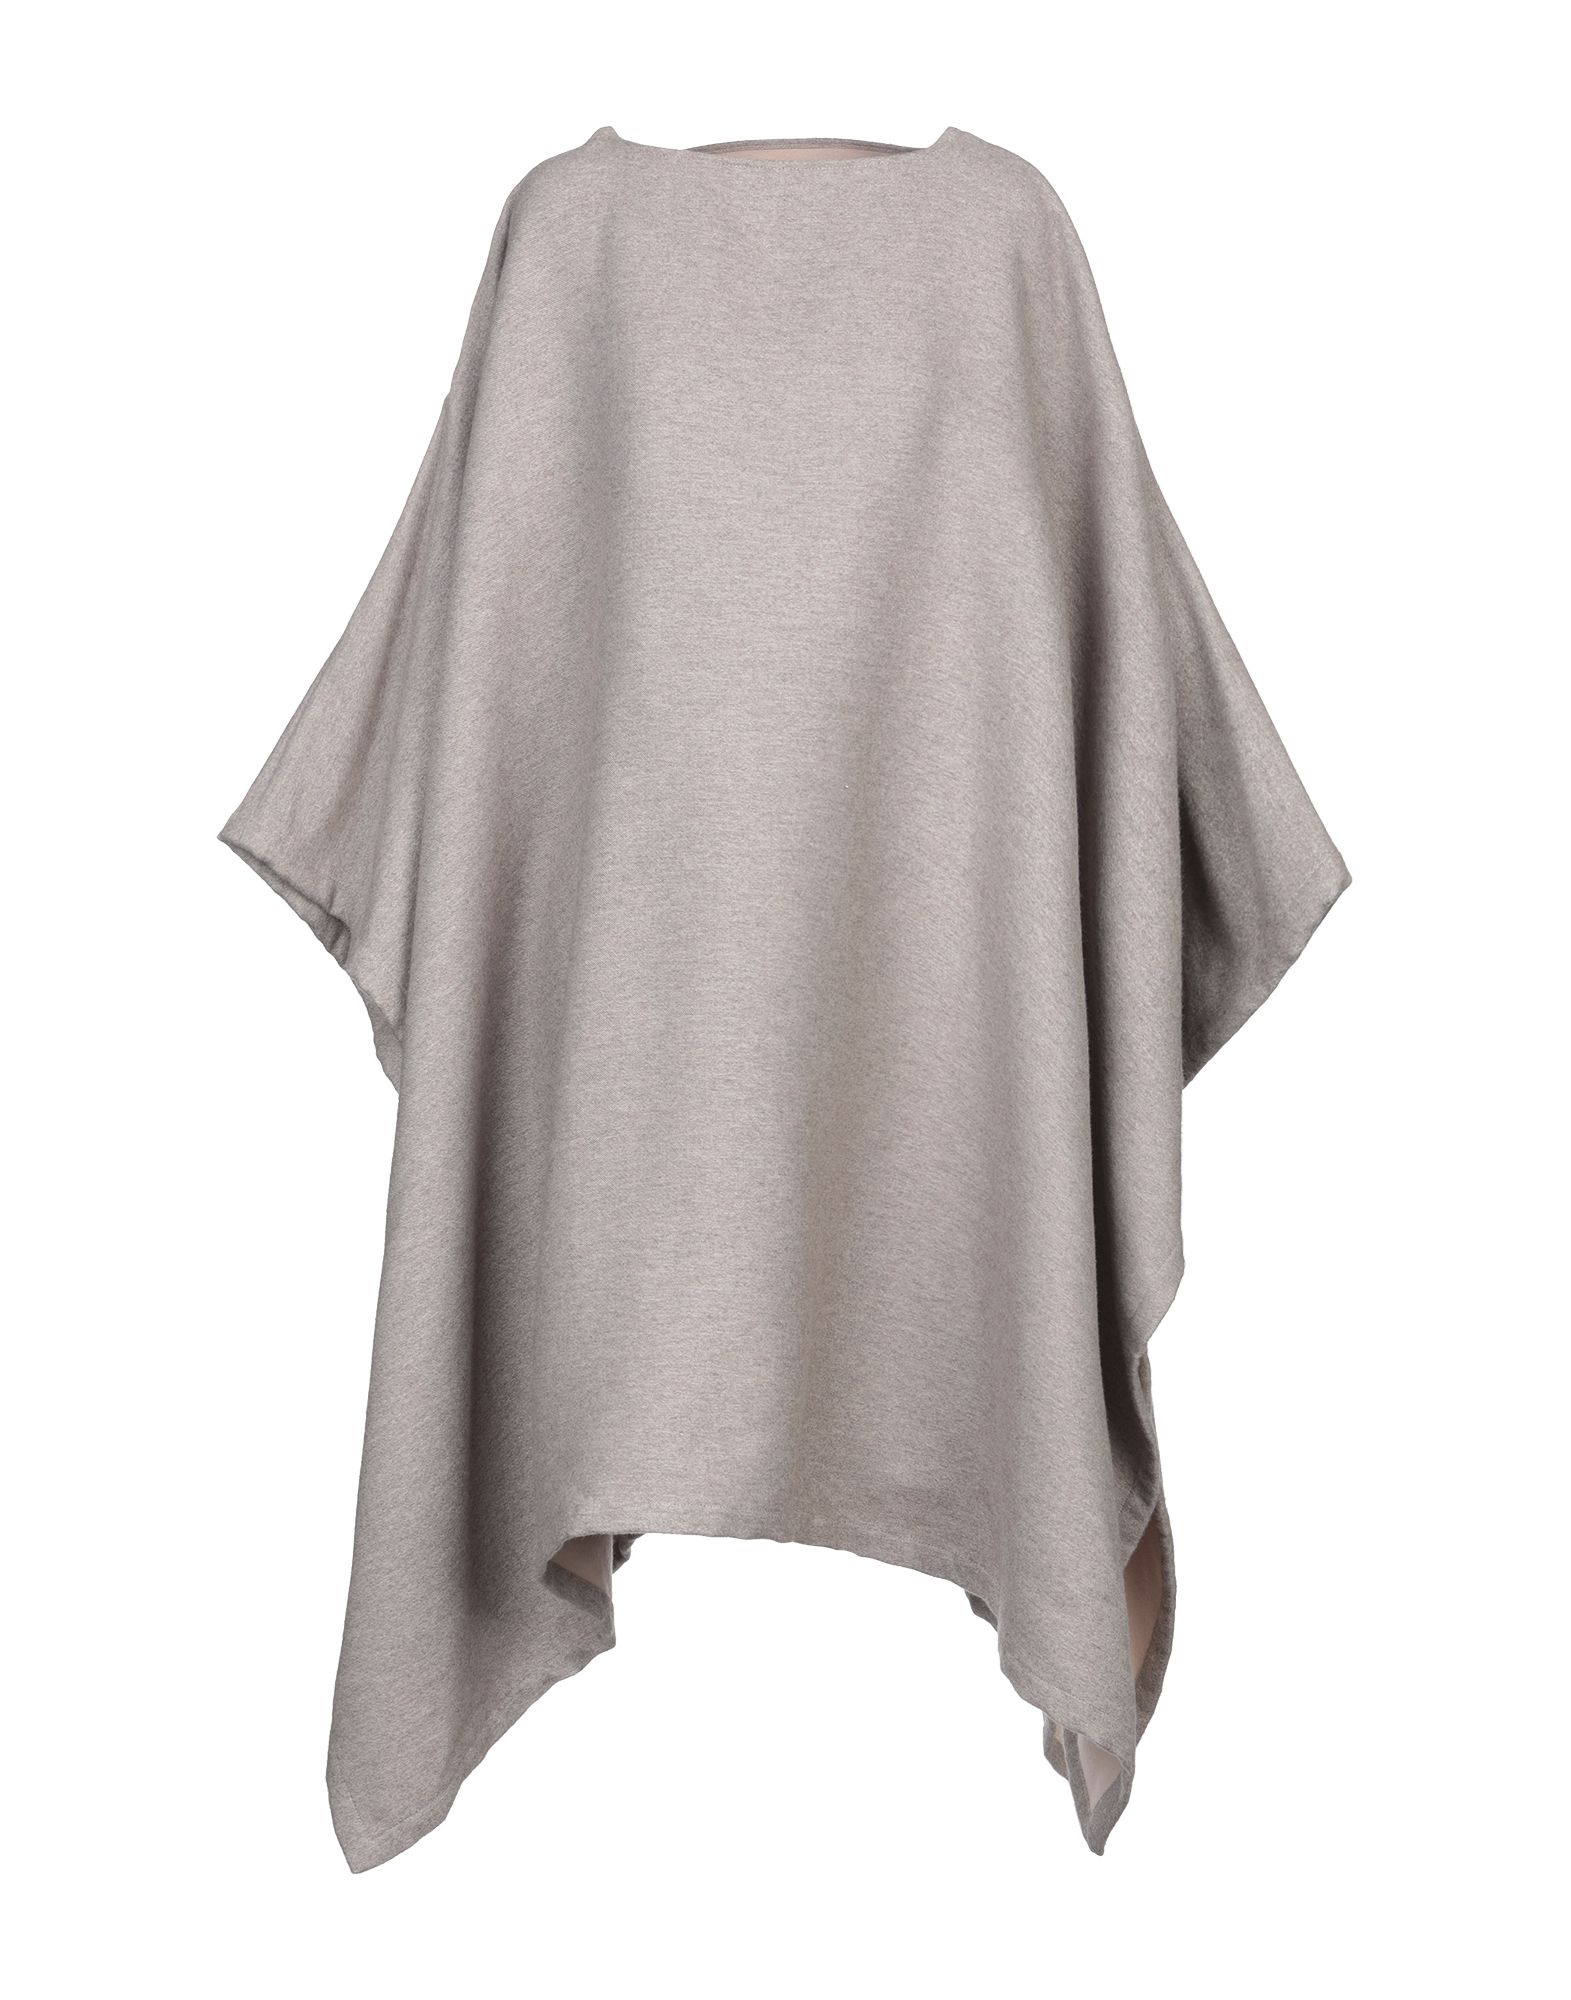 GIORGIO ARMANI Capes & ponchos. flannel, no appliqués, basic solid color, single-breasted, zip, wide neckline, no pockets, sleeveless, unlined. 91% Wool, 9% Silk